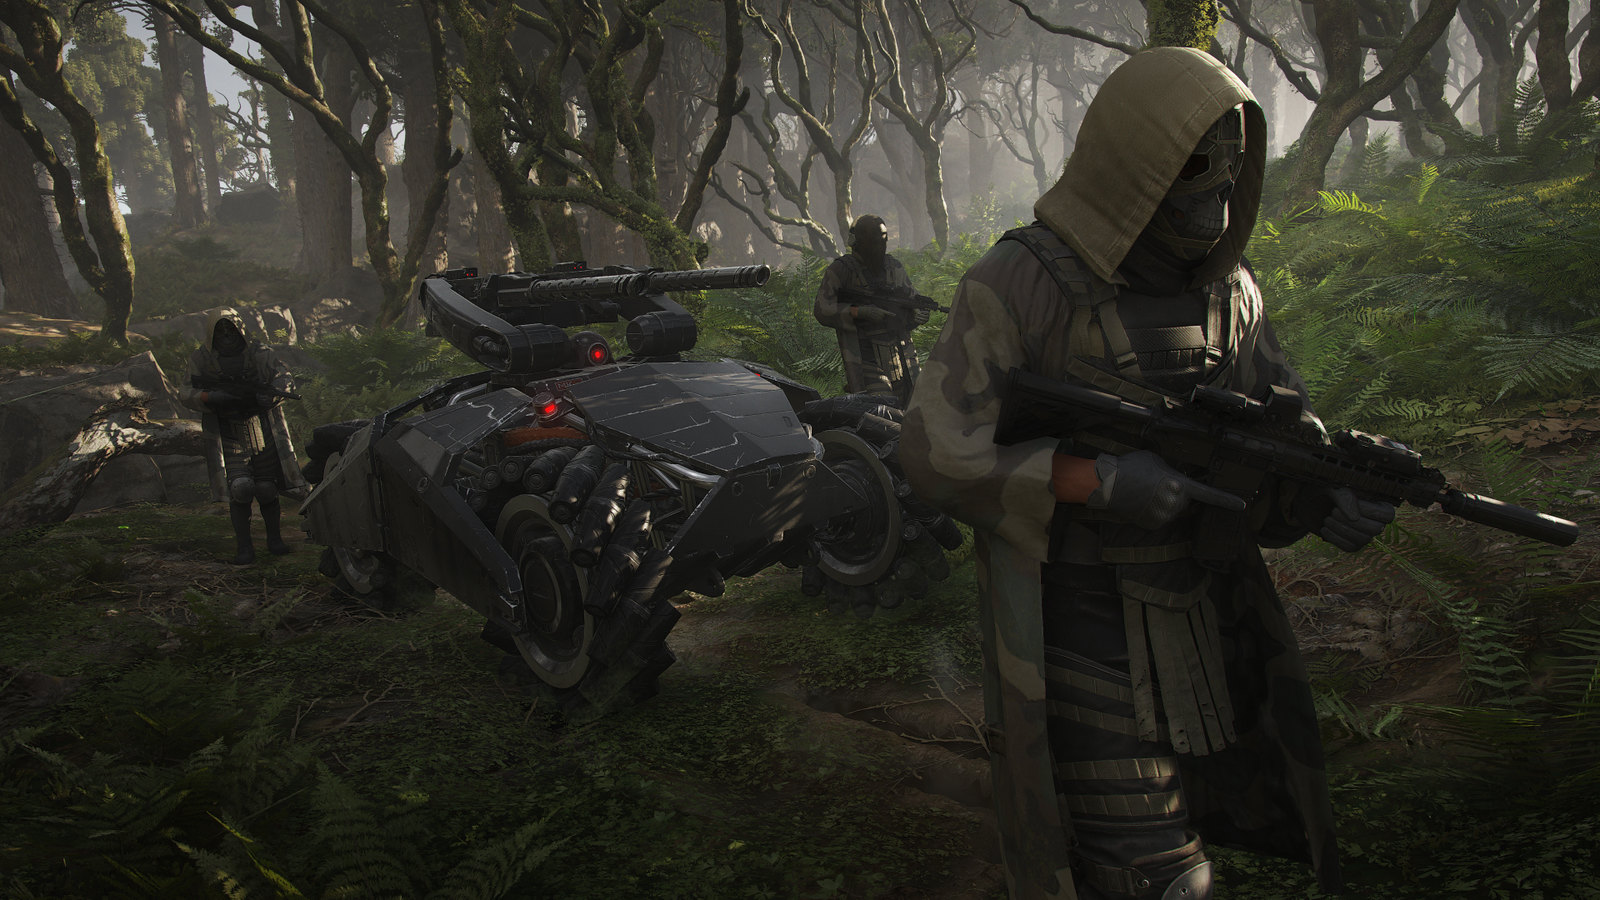 10 things you need to know about Ghost Recon Breakpoint